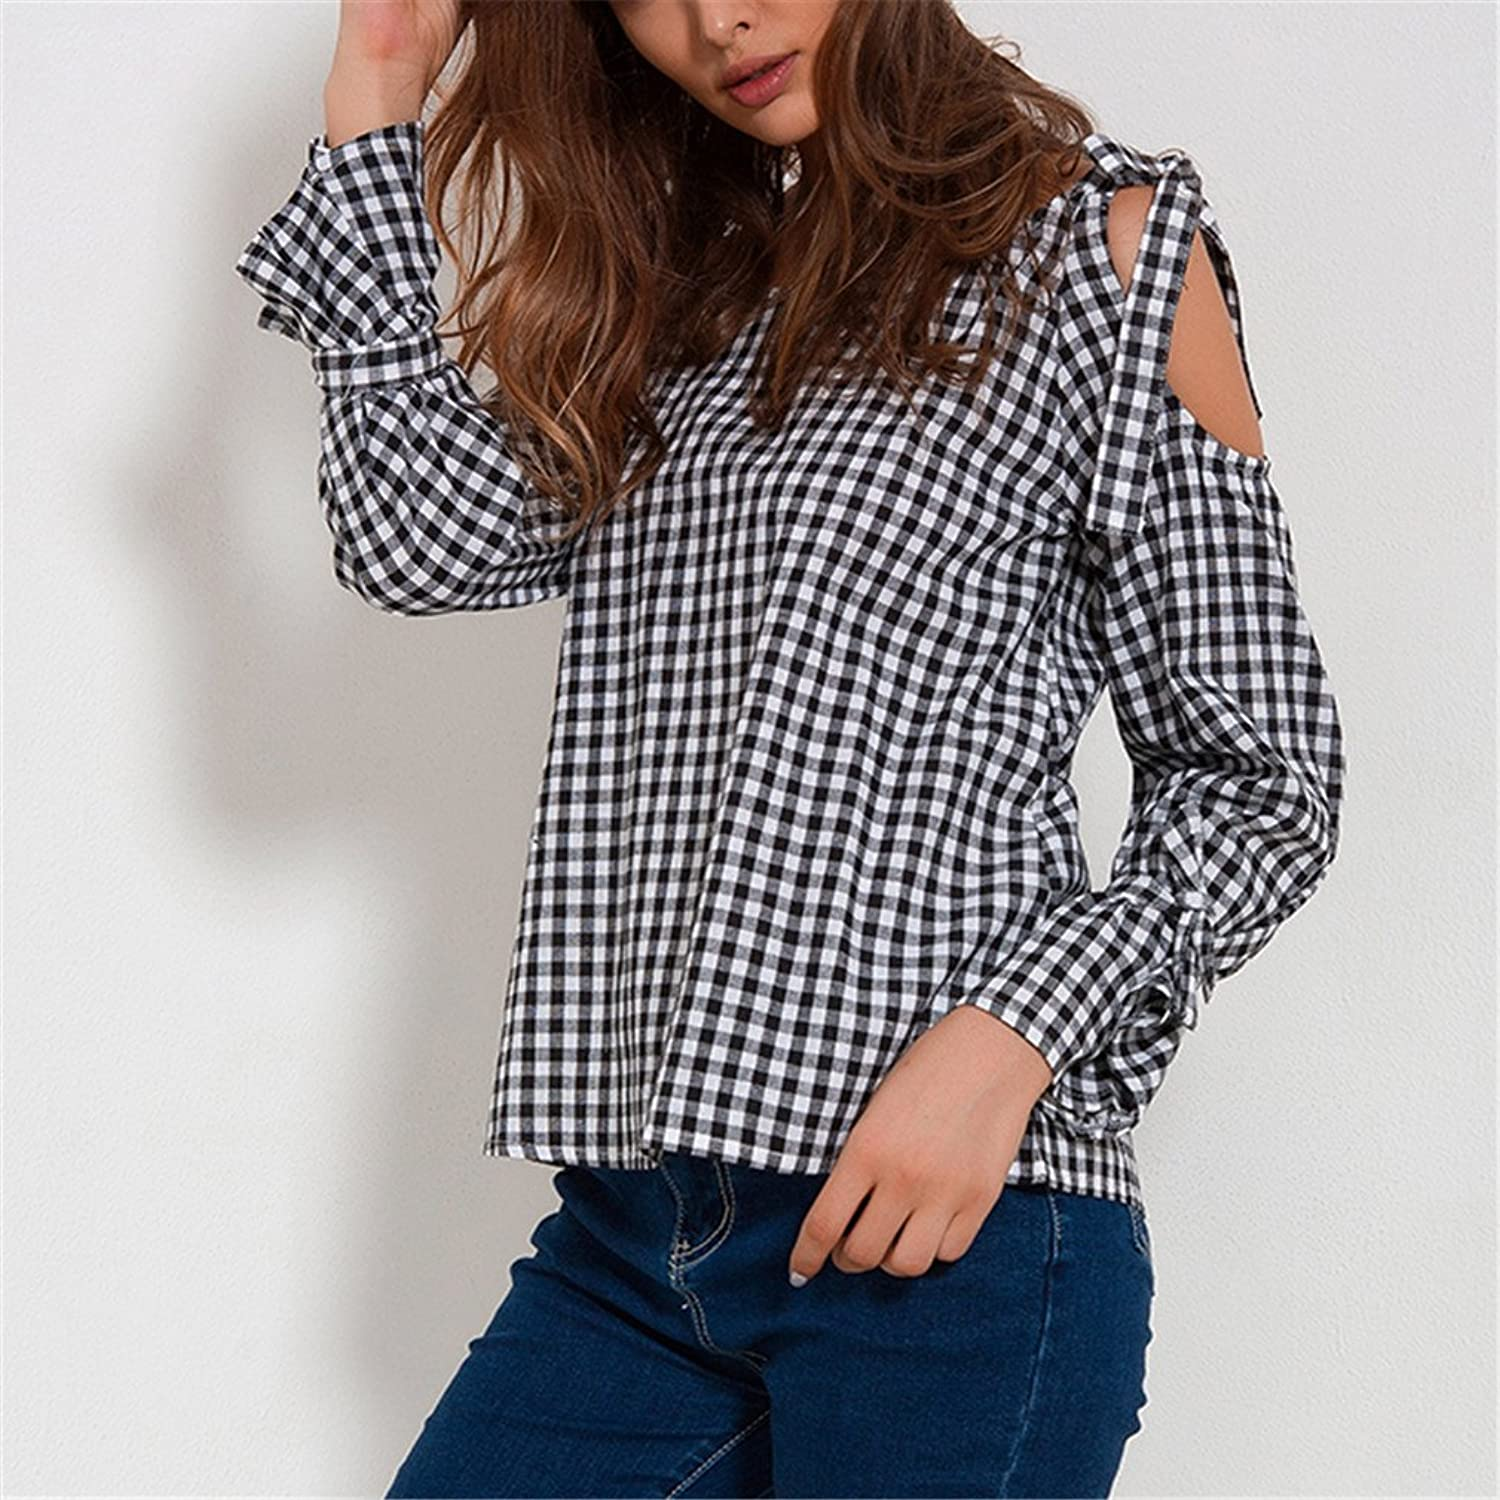 Cold Shoulder Tops For Women Blouses Spring Plaid Shirt Streetwear Long Sleeve Blouse With Bow at Amazon Womens Clothing store: